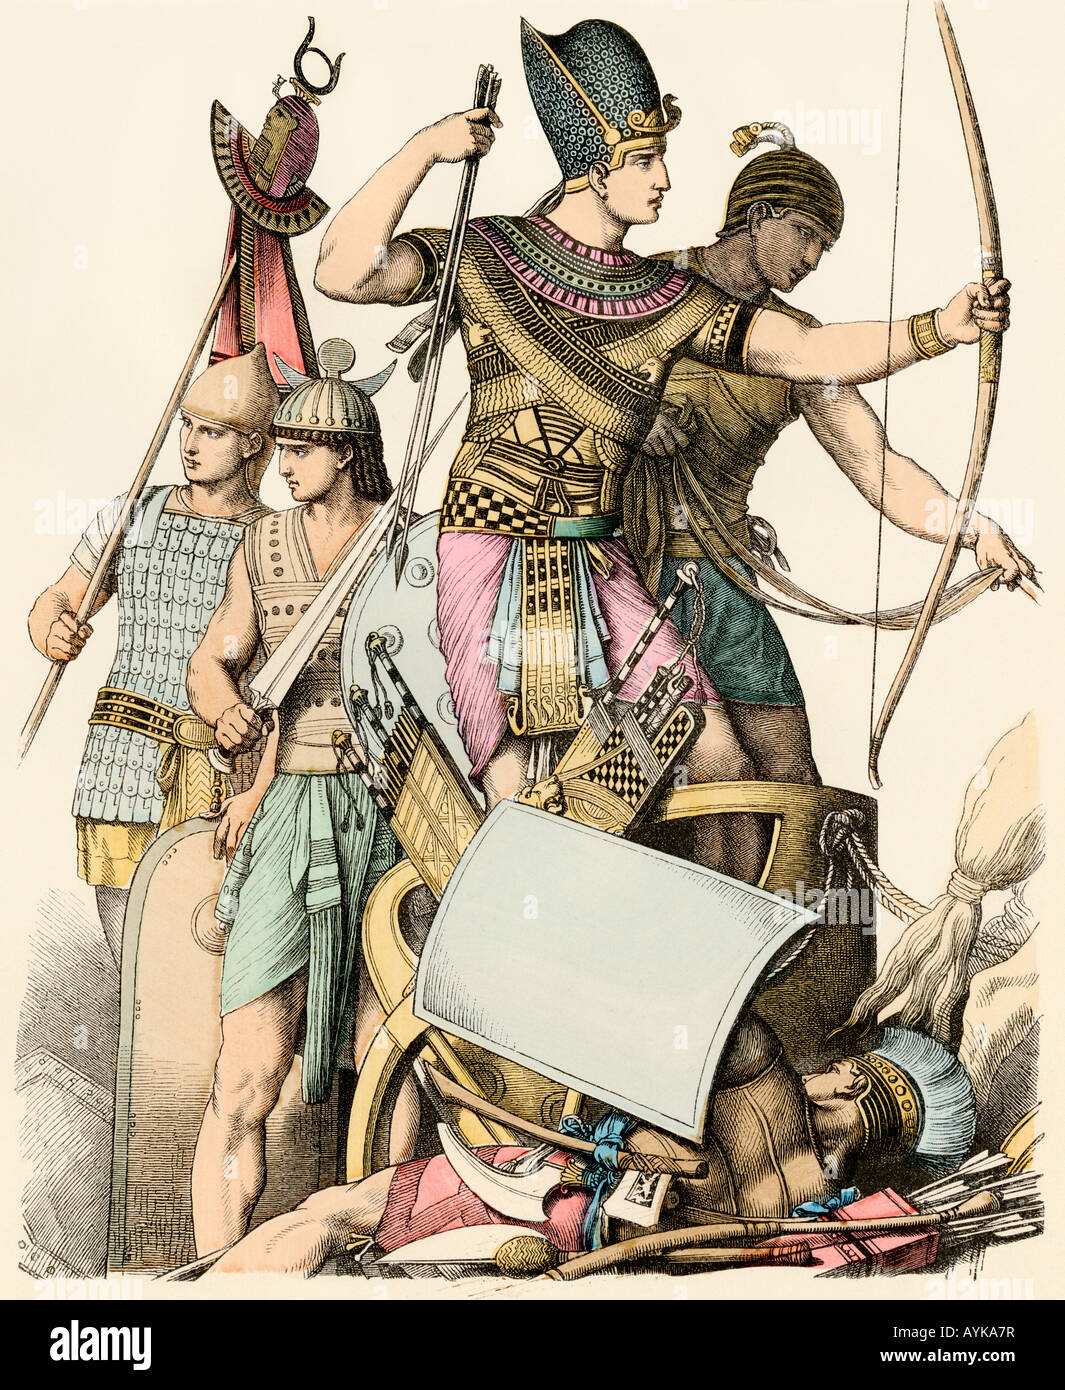 Pharaoh leading Egyptian soldiers in battle. Hand-colored print - Stock Image